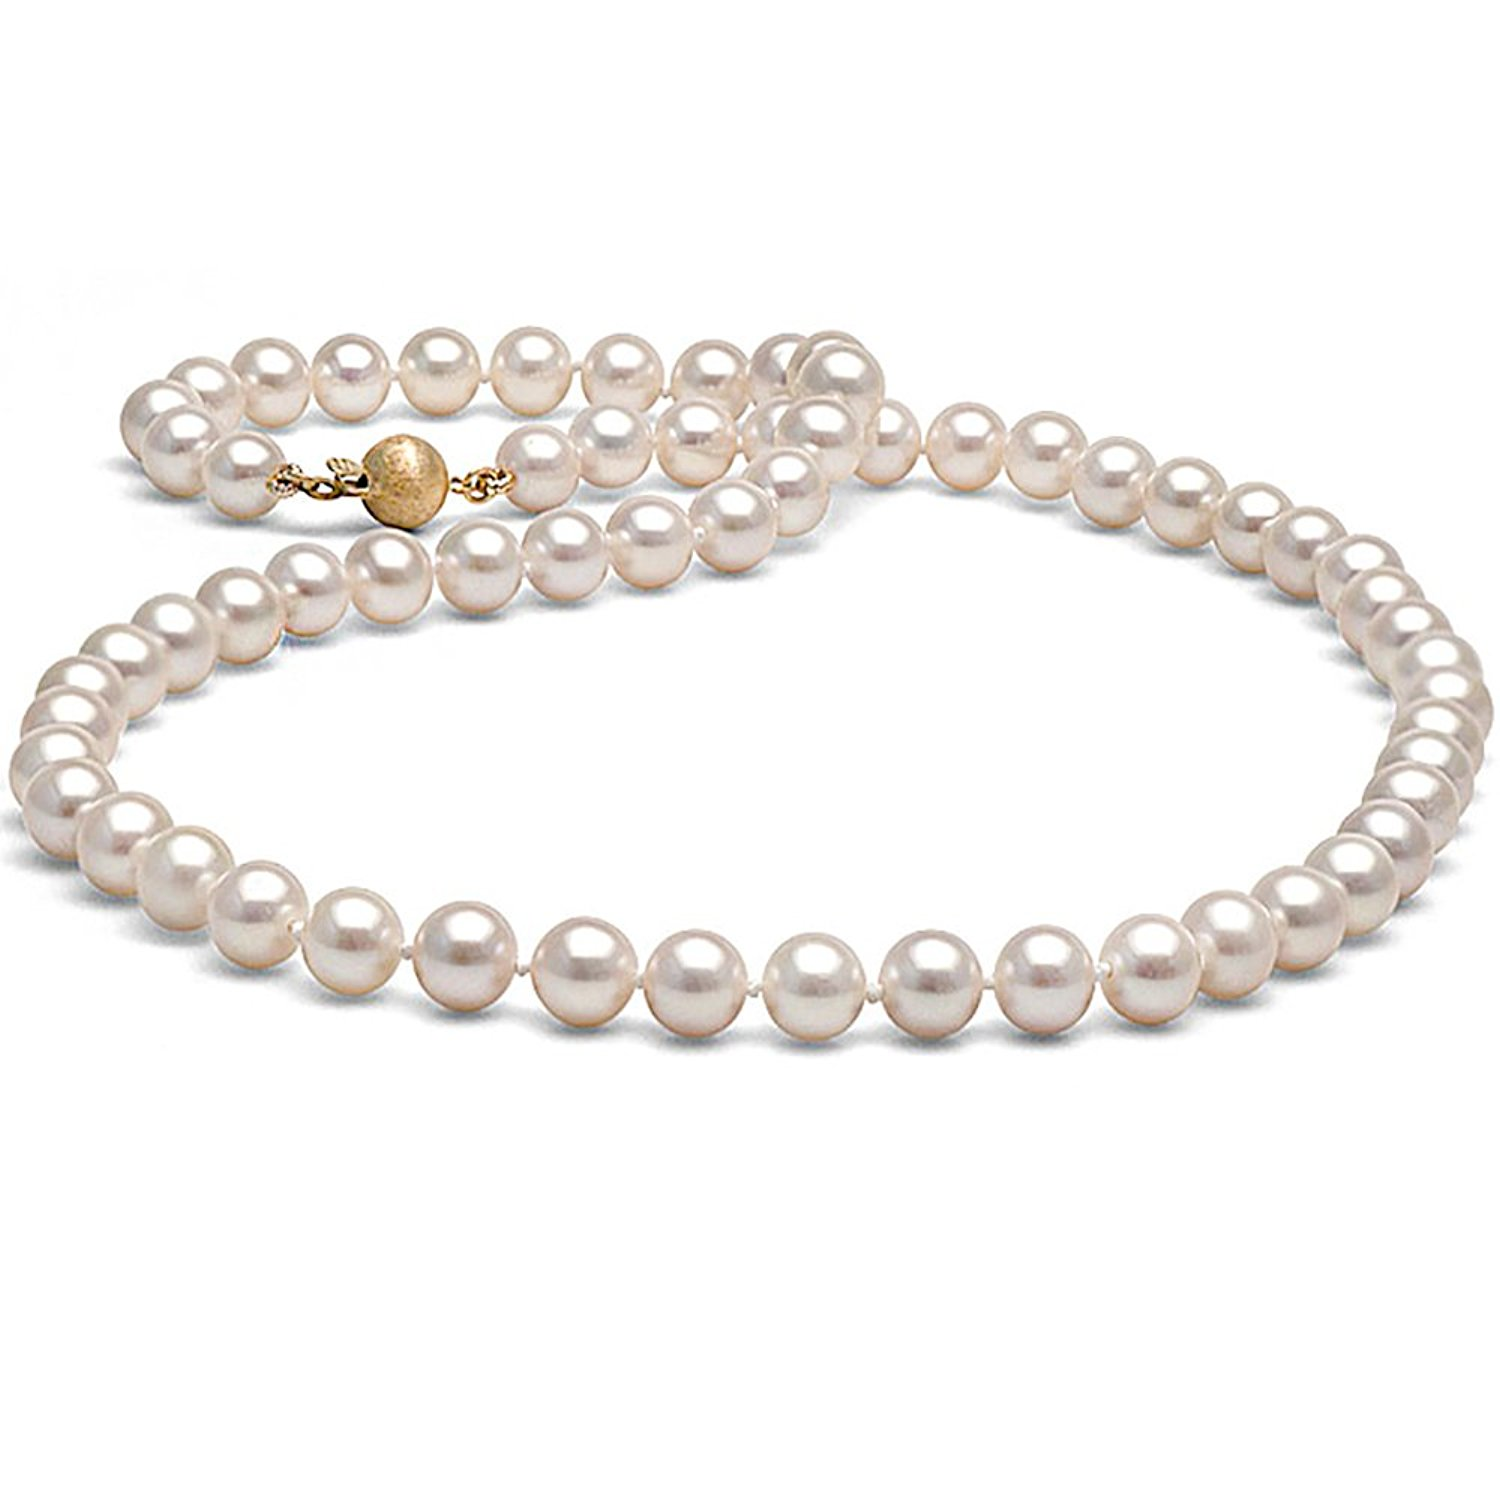 464b04f35b51f Cheap Cultured Pearl Necklace Prices, find Cultured Pearl Necklace ...